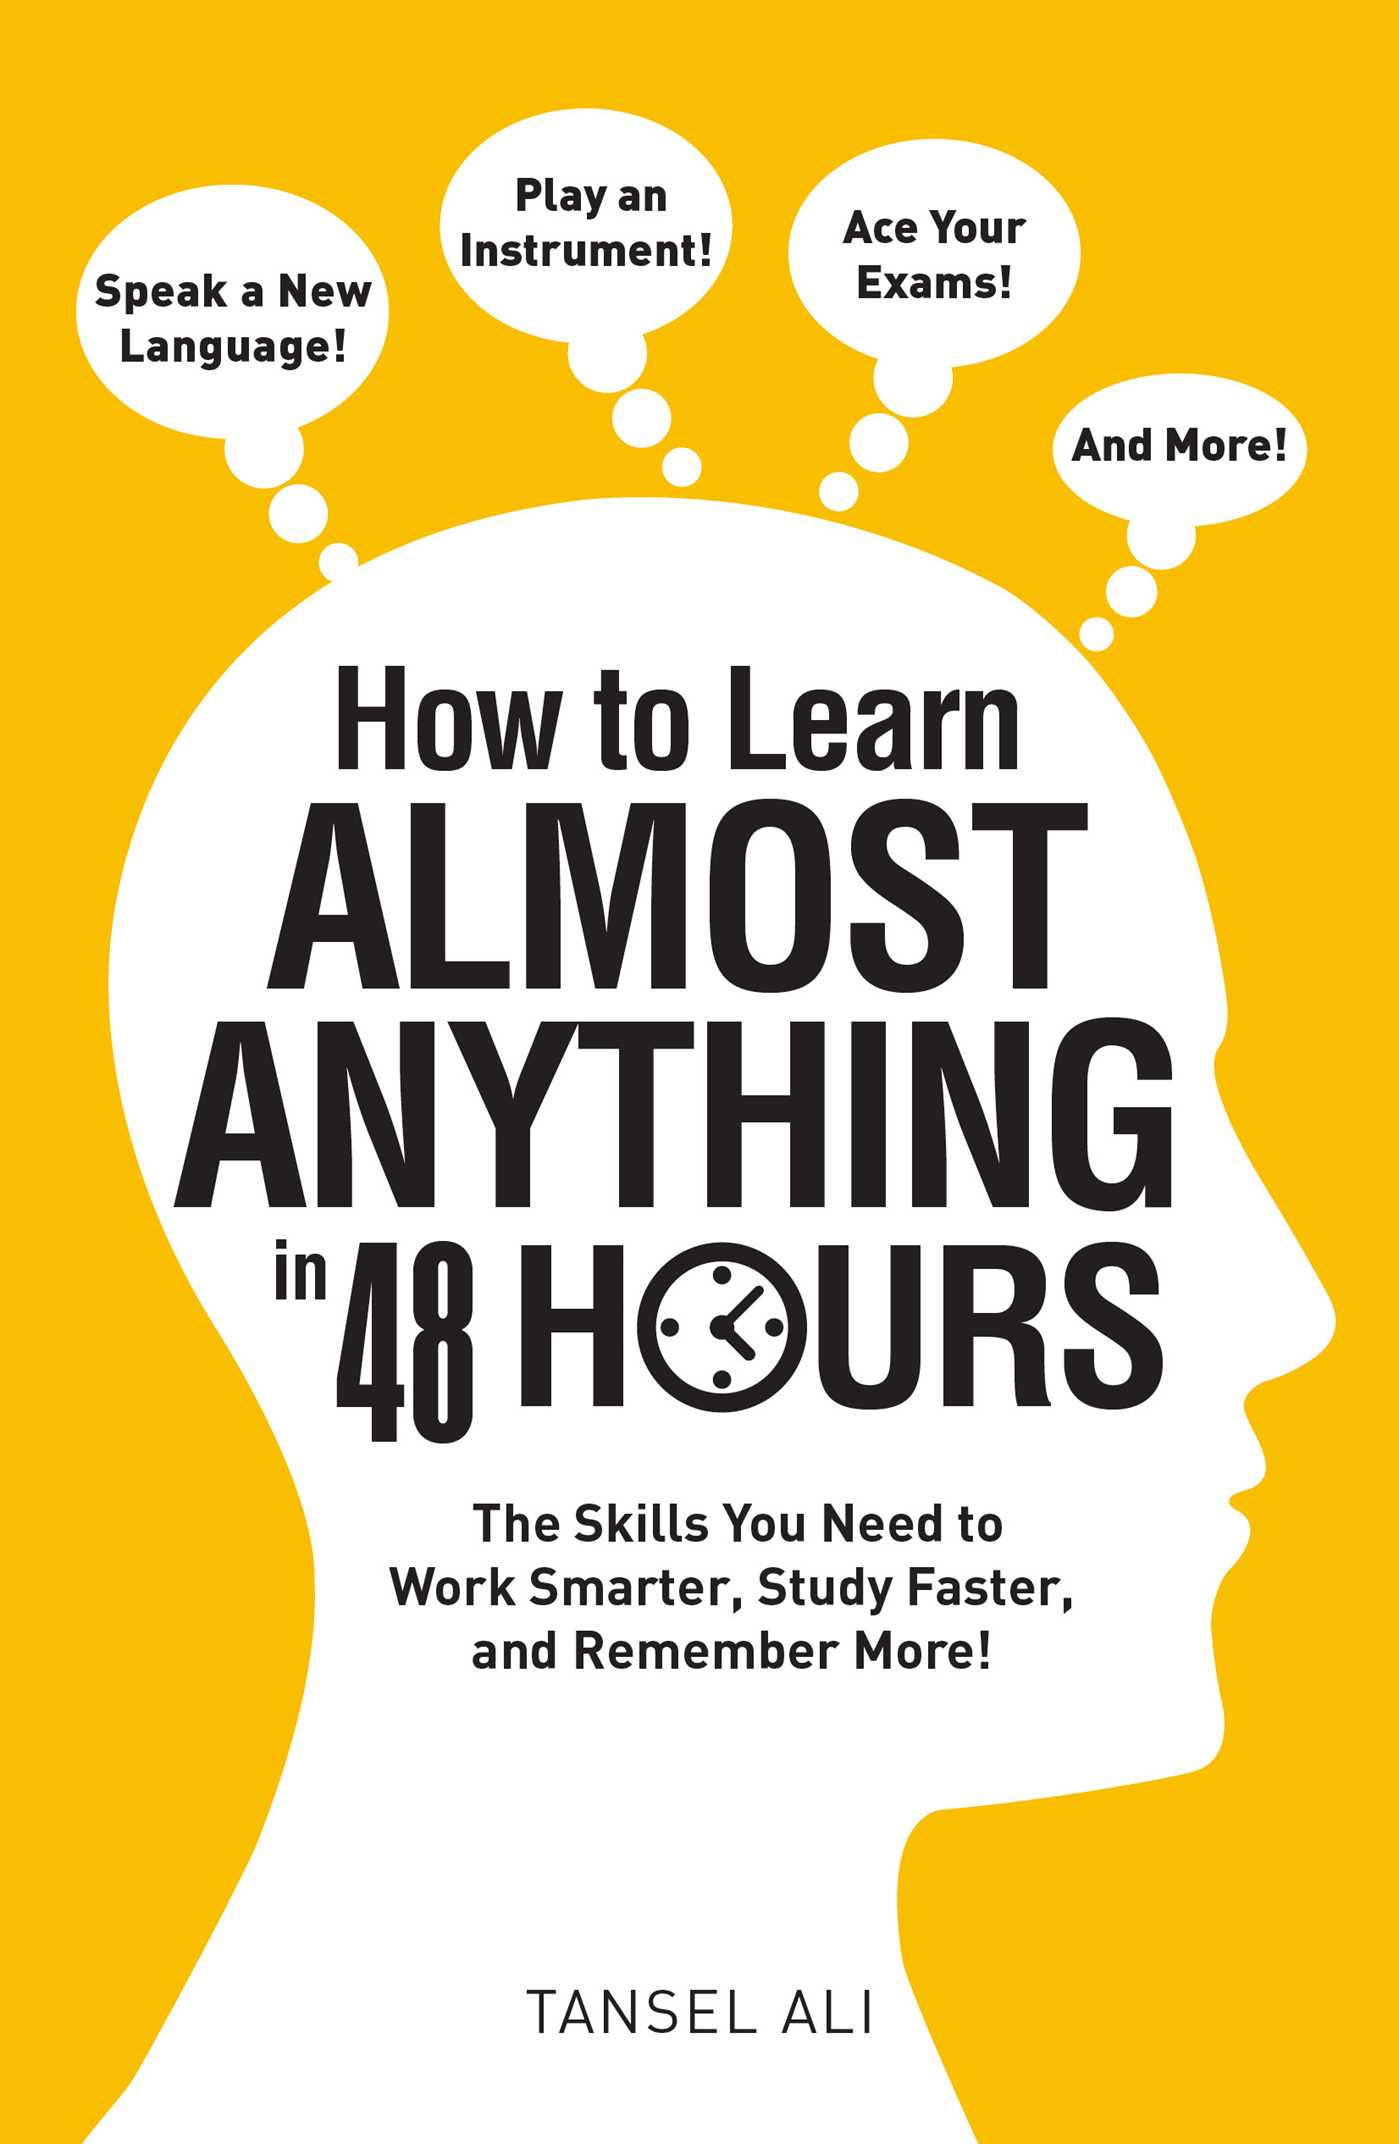 Tansel Ali – How To Learn Almost Anything In 48 Hours